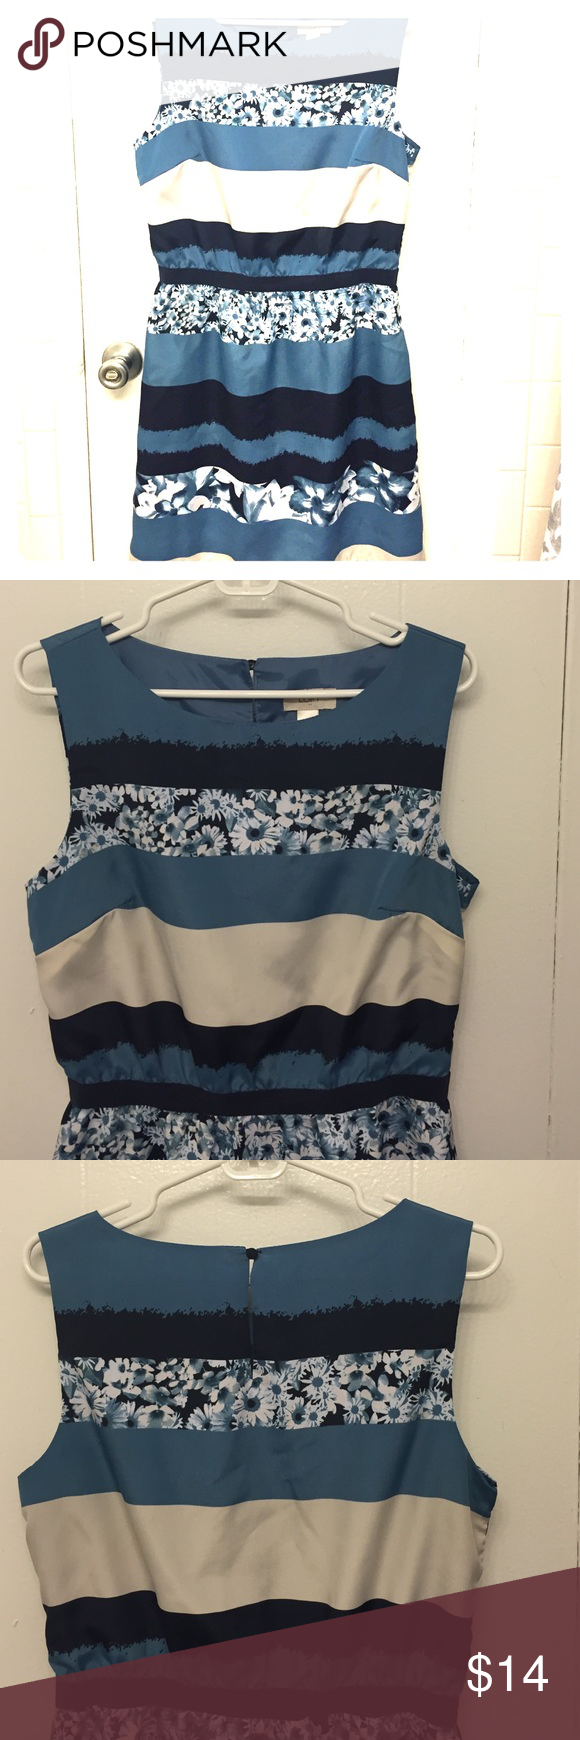 Loft blue floral dress Absolutely adorable but too big on me; true to size. Floral and stripes, blues and cream. Fully lined. LOFT Dresses